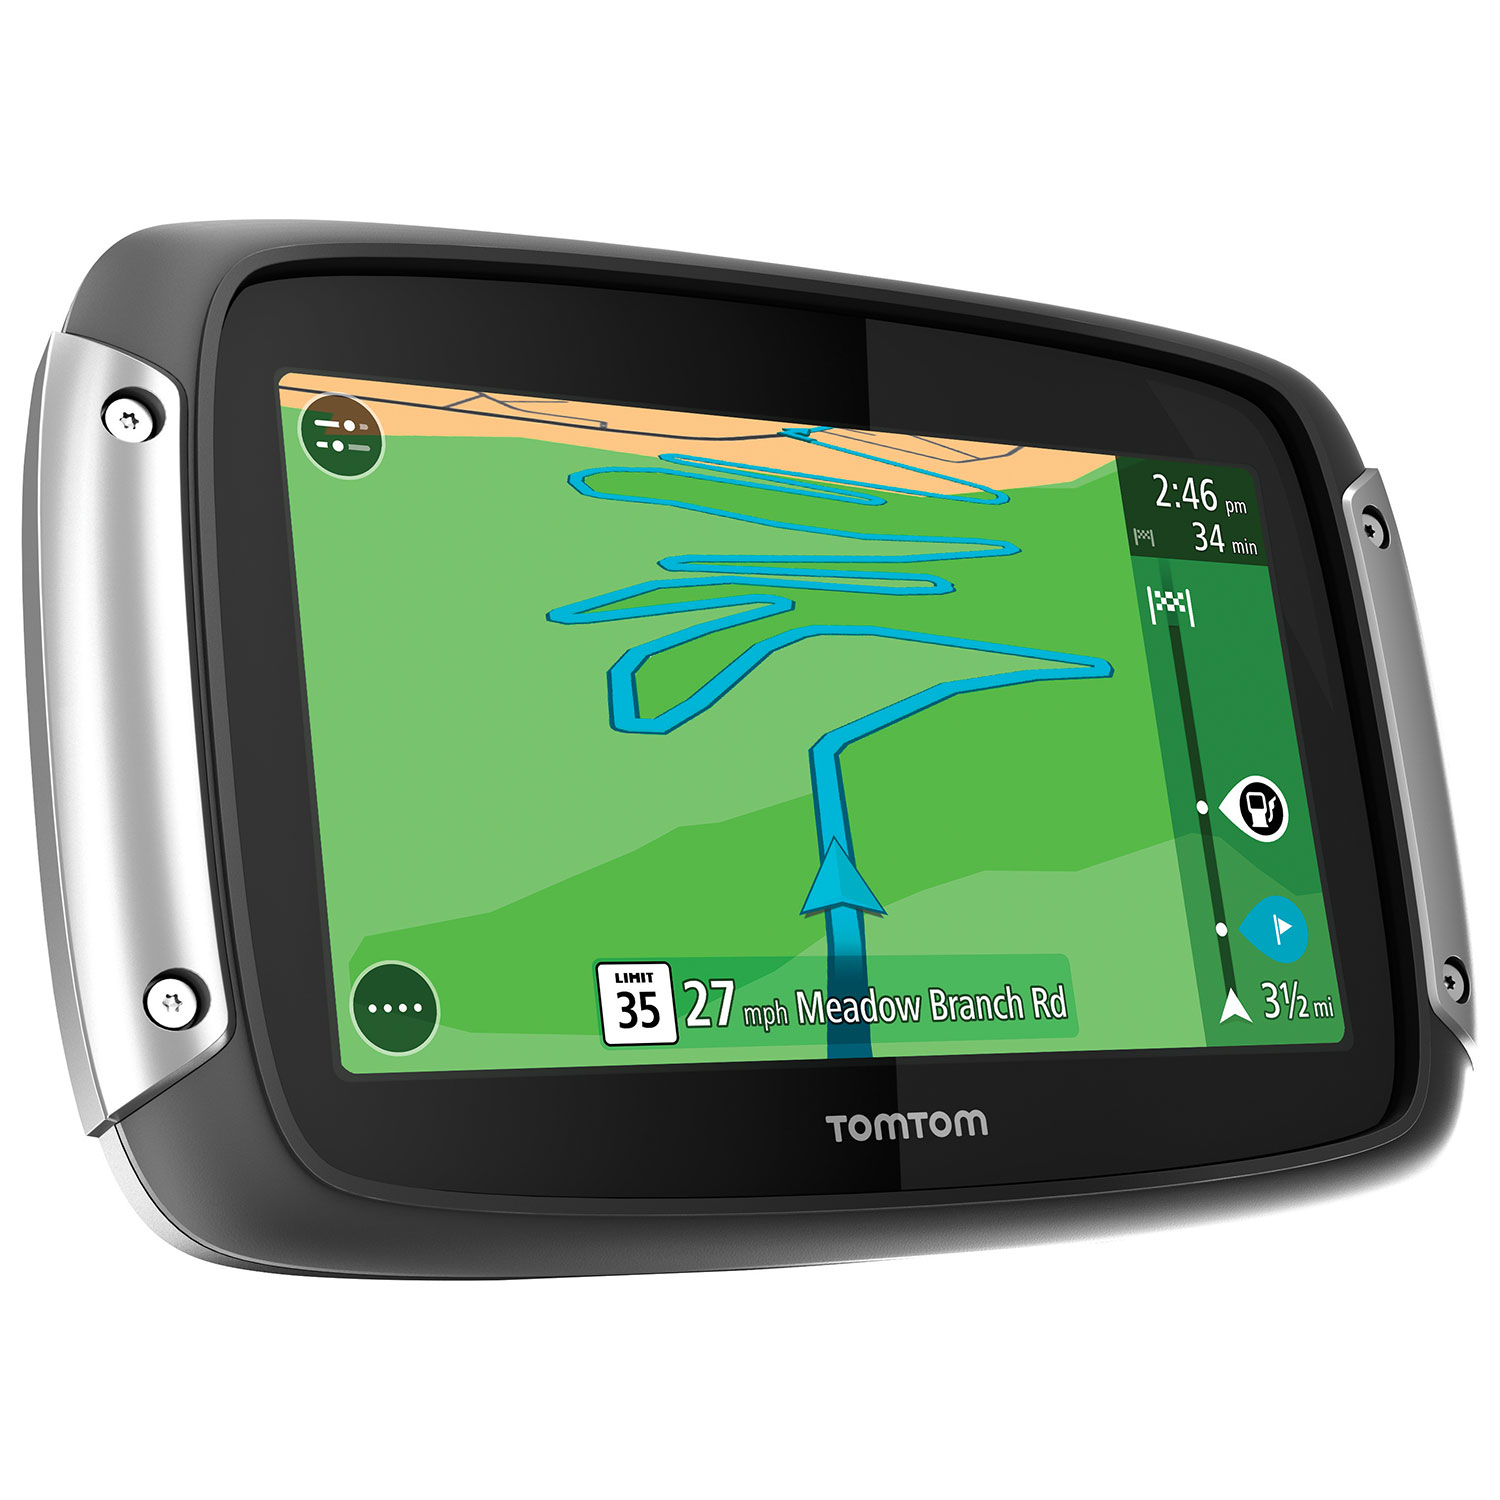 Tomtom Rider Gps Ge Gps Best Buy Canada Tomtom Map Usa